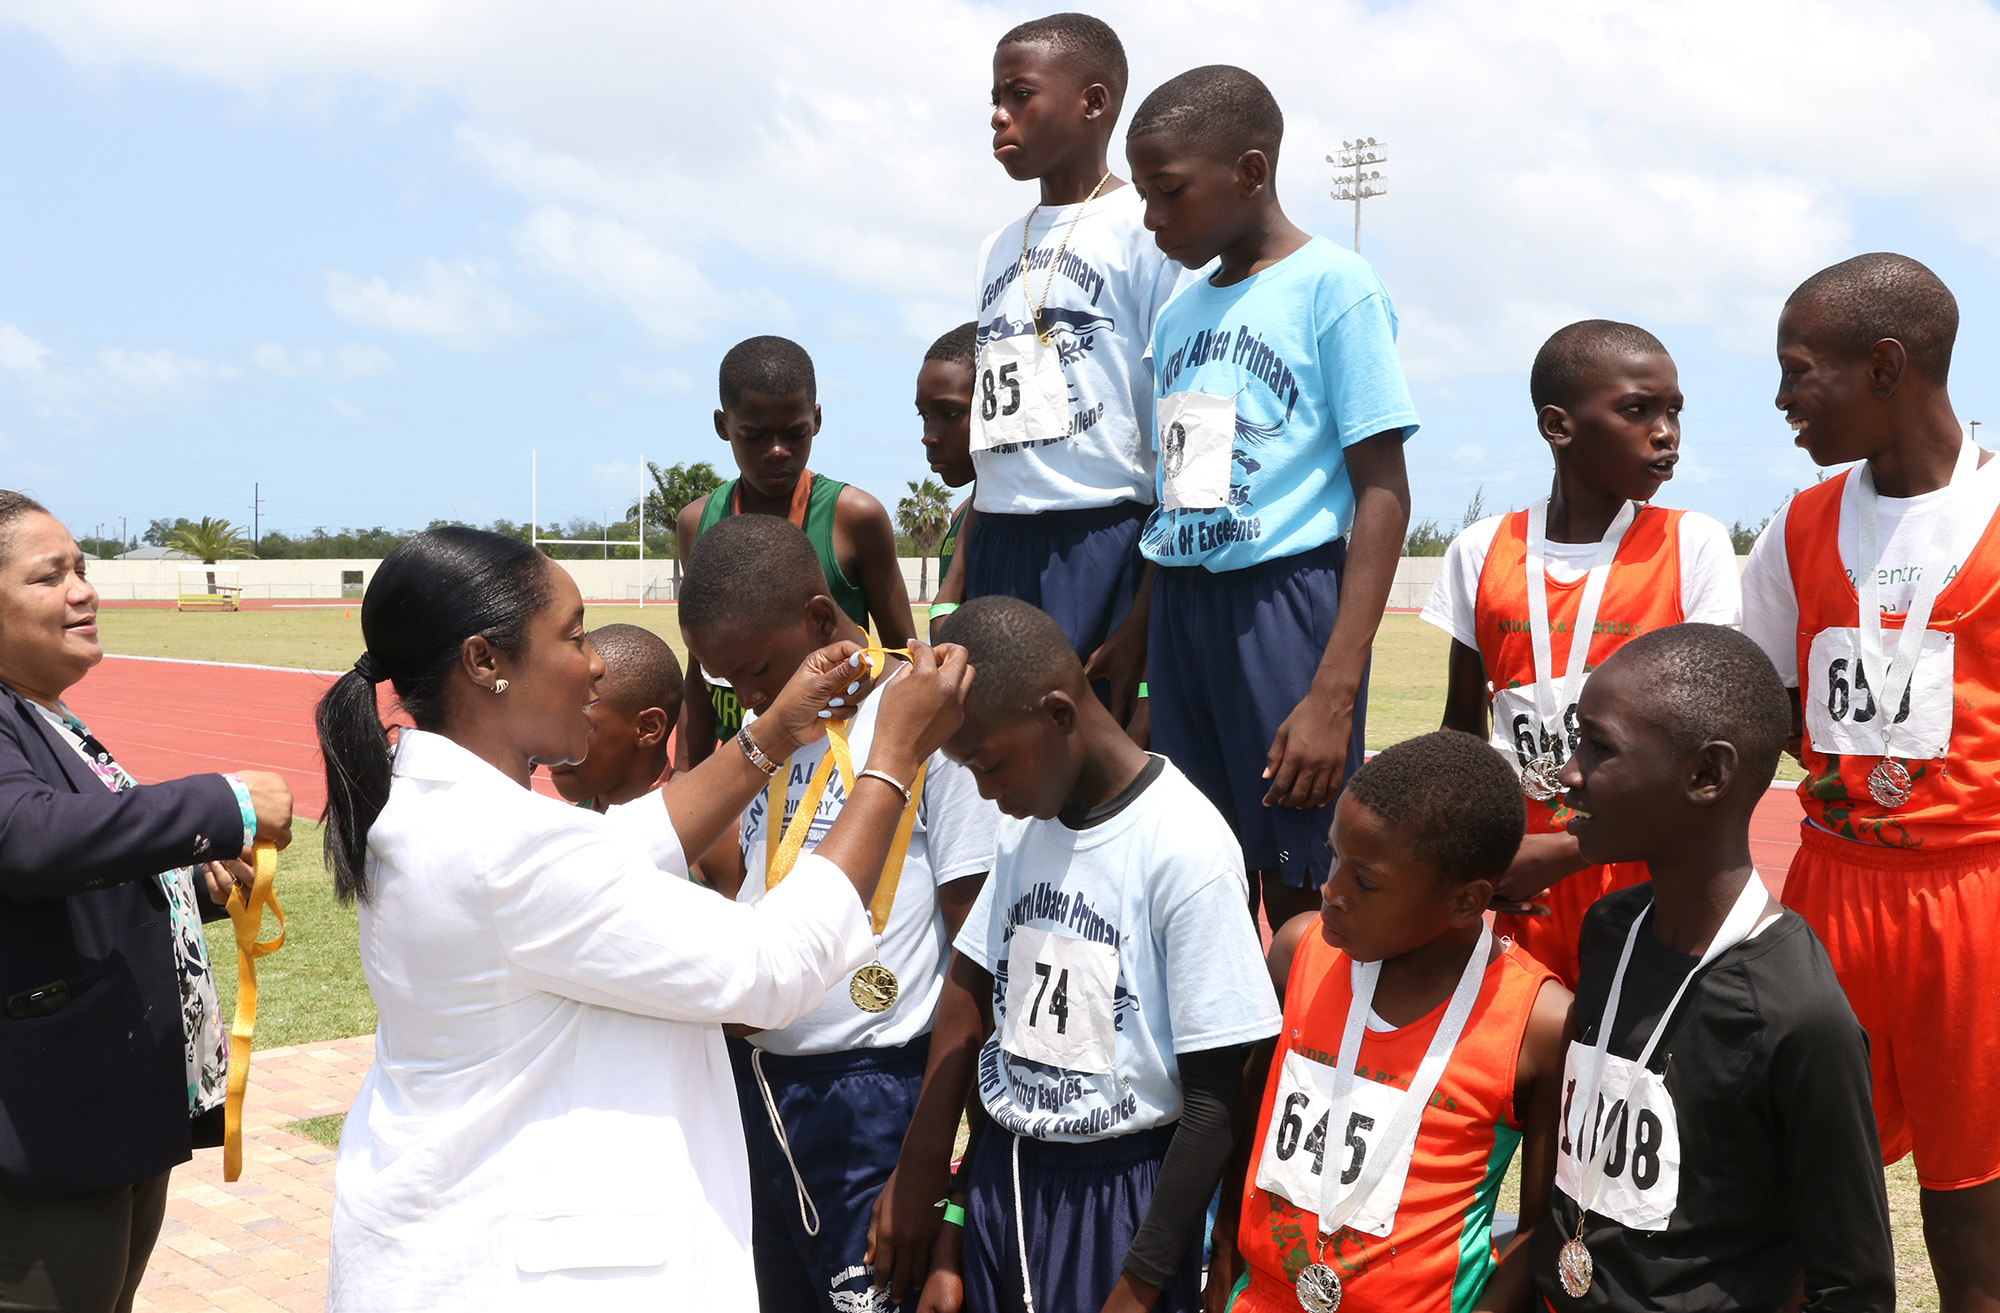 Minister Lanisha Rolle Presents Medals | ZNS BAHAMAS